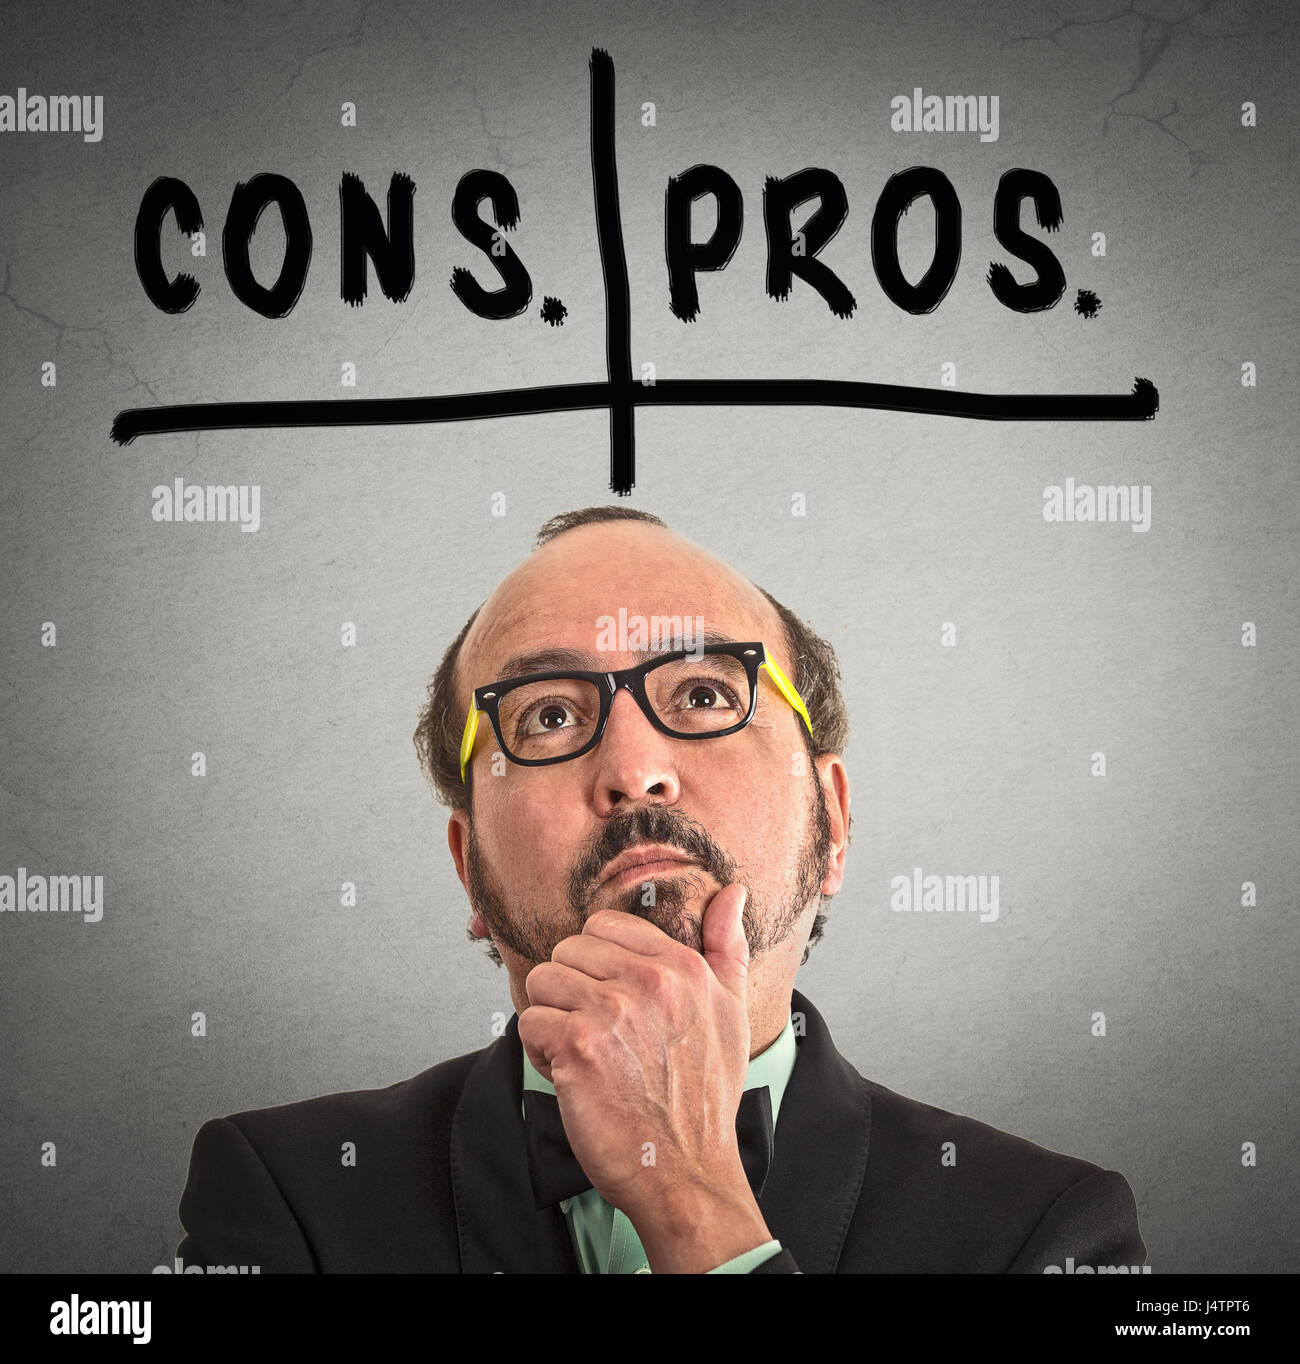 pros and cons, for and against argument concept. Thinking middle aged business man with glasses looking up isolated - Stock Image